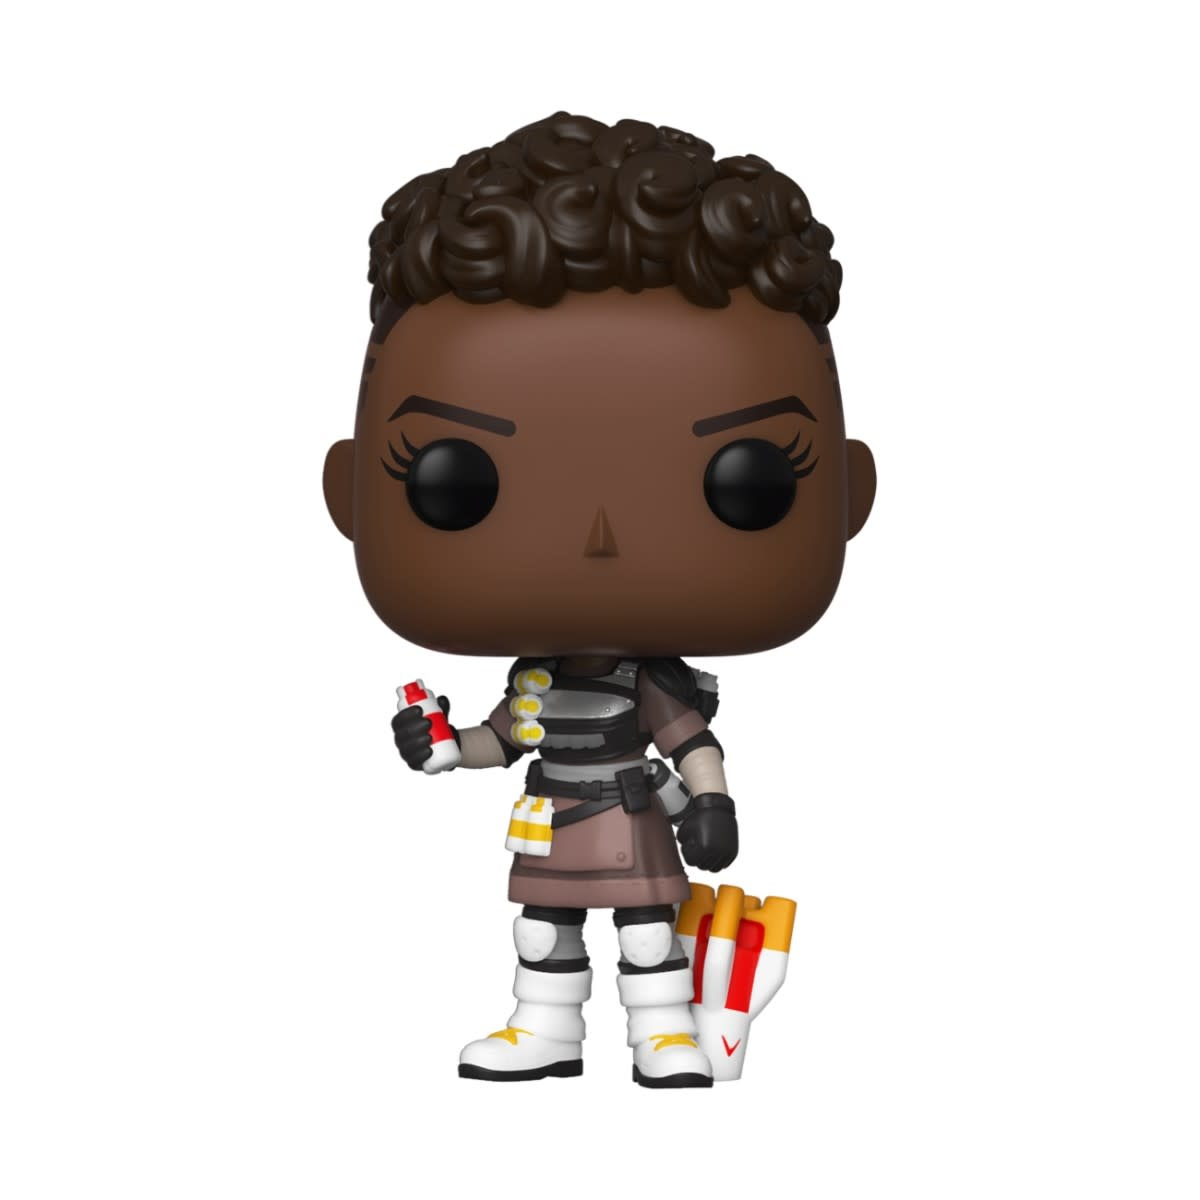 FUNKO Pop! Games: Apex Legends - Bangalore